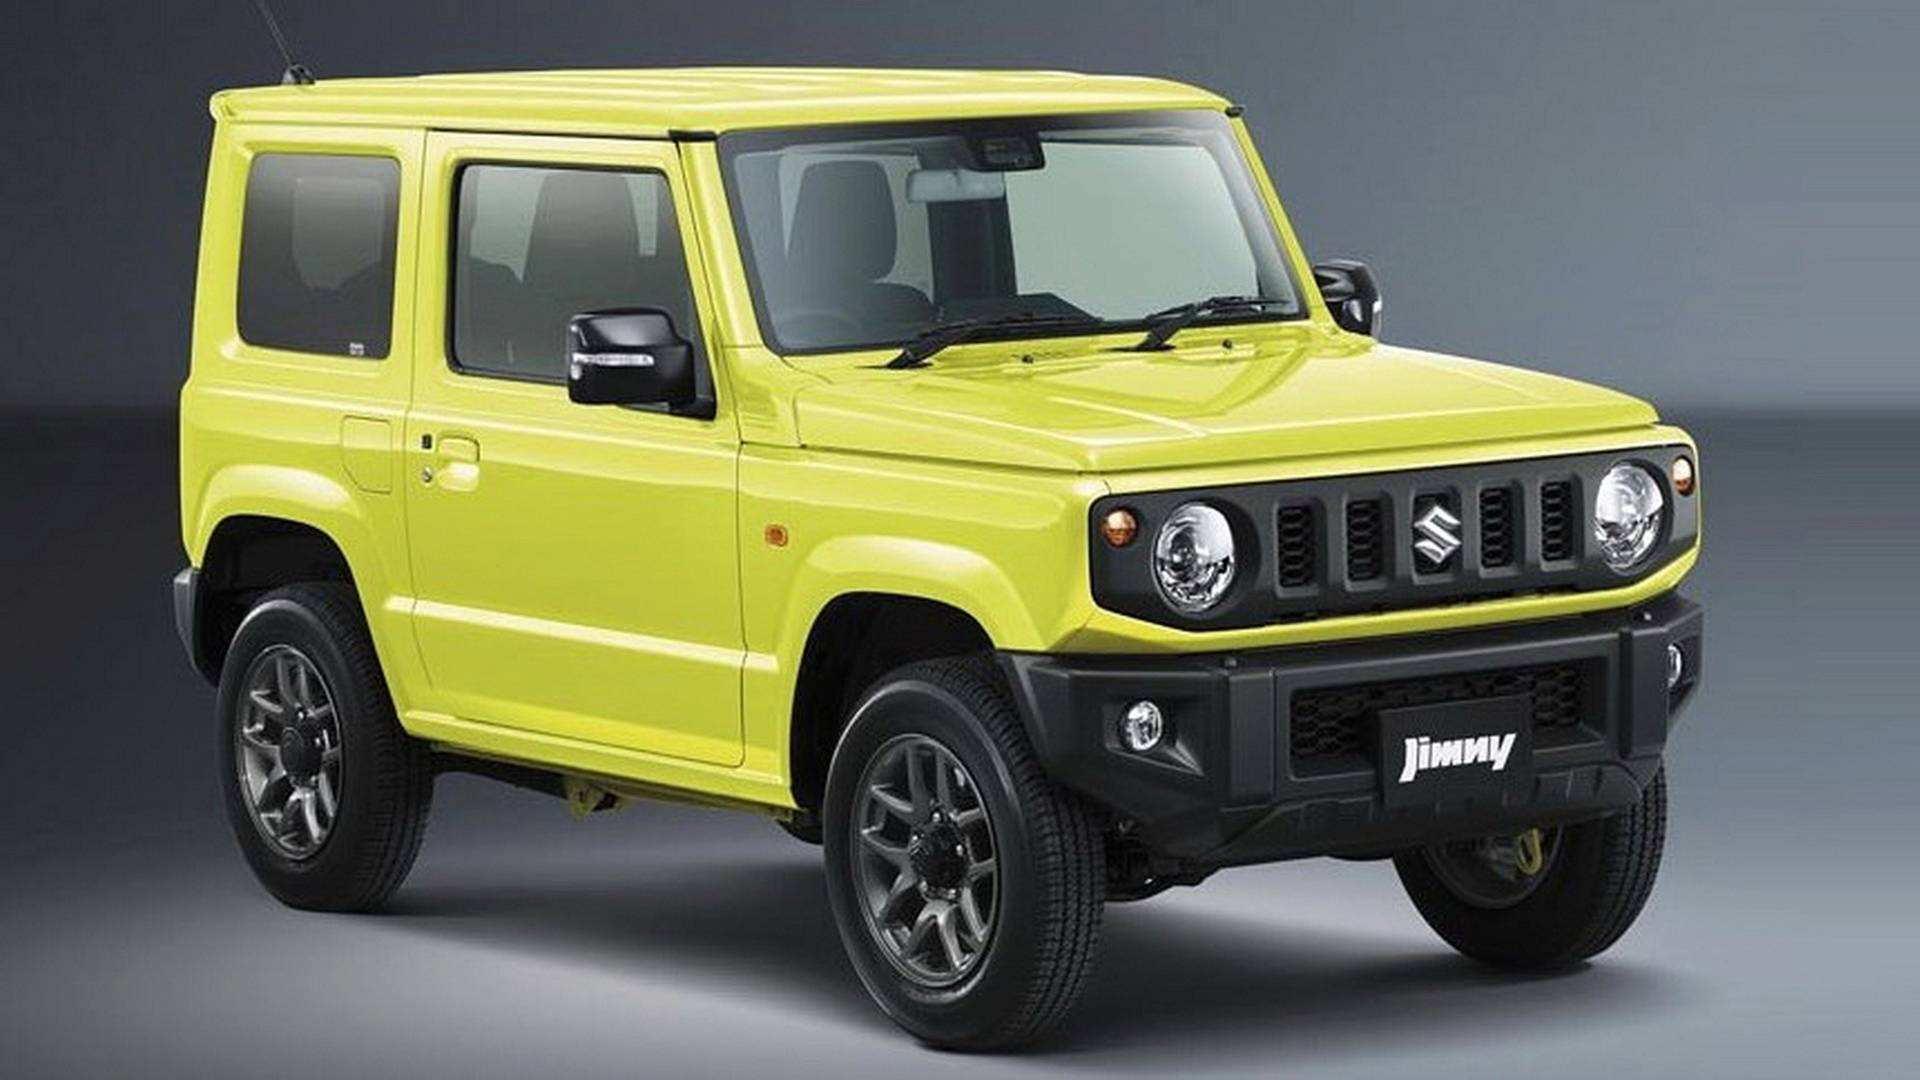 63 New Jimny 2019 Mercedes New Concept Speed Test For Jimny 2019